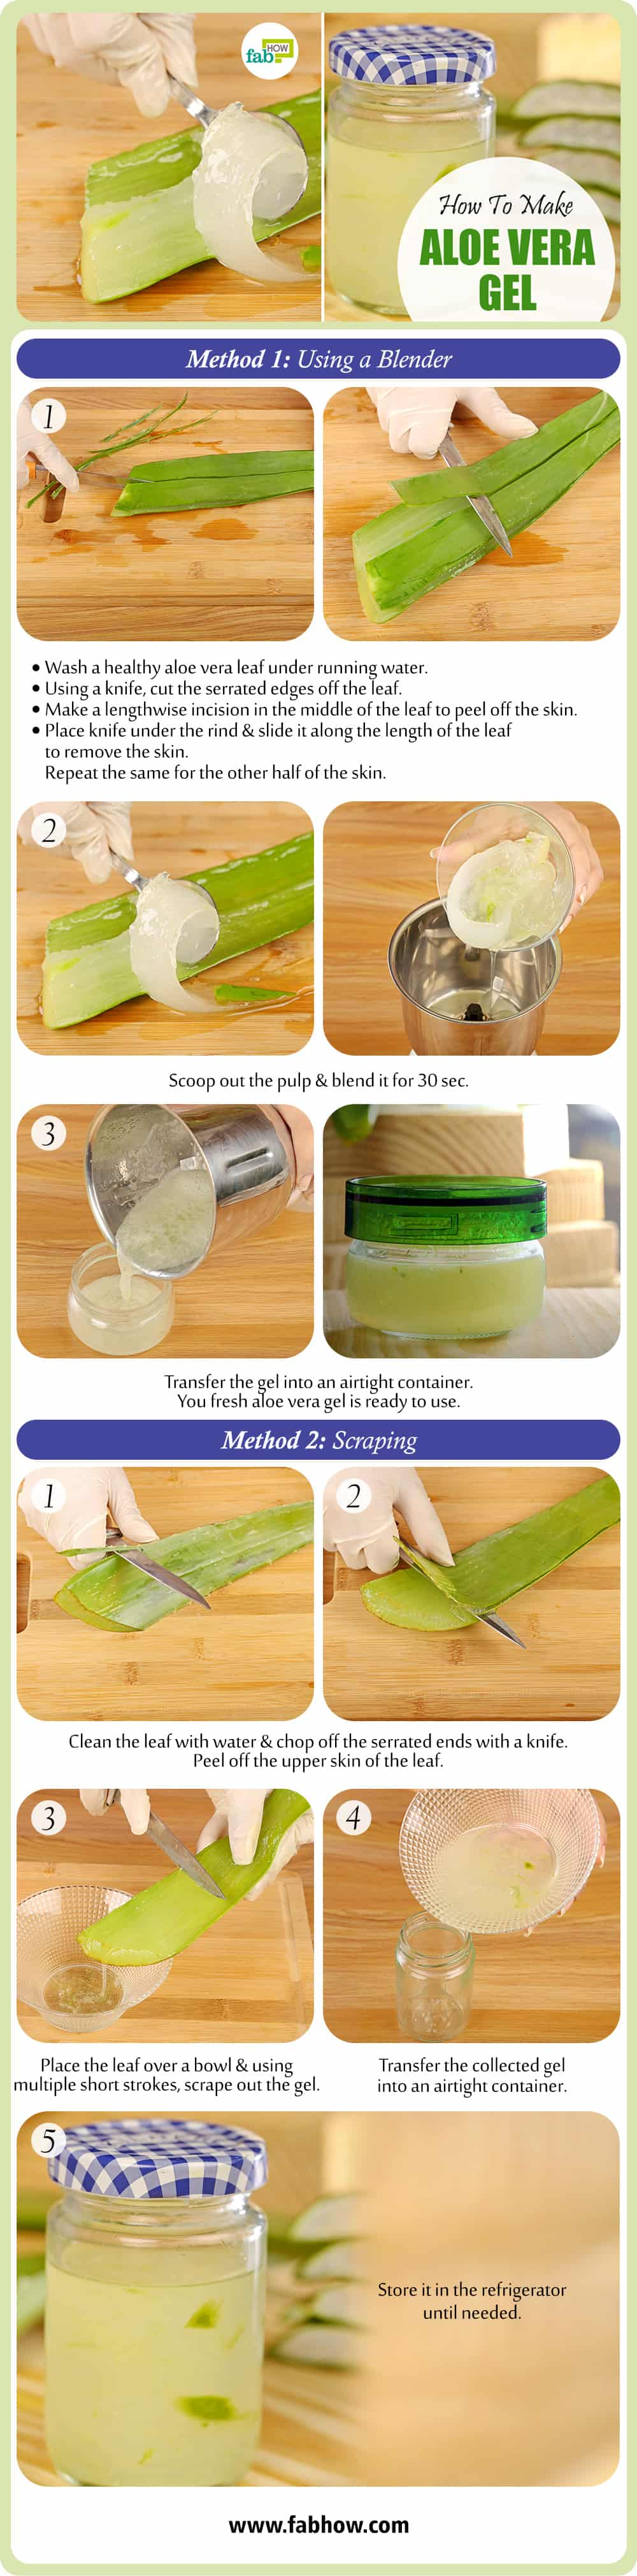 how to make aloe vera gel summary